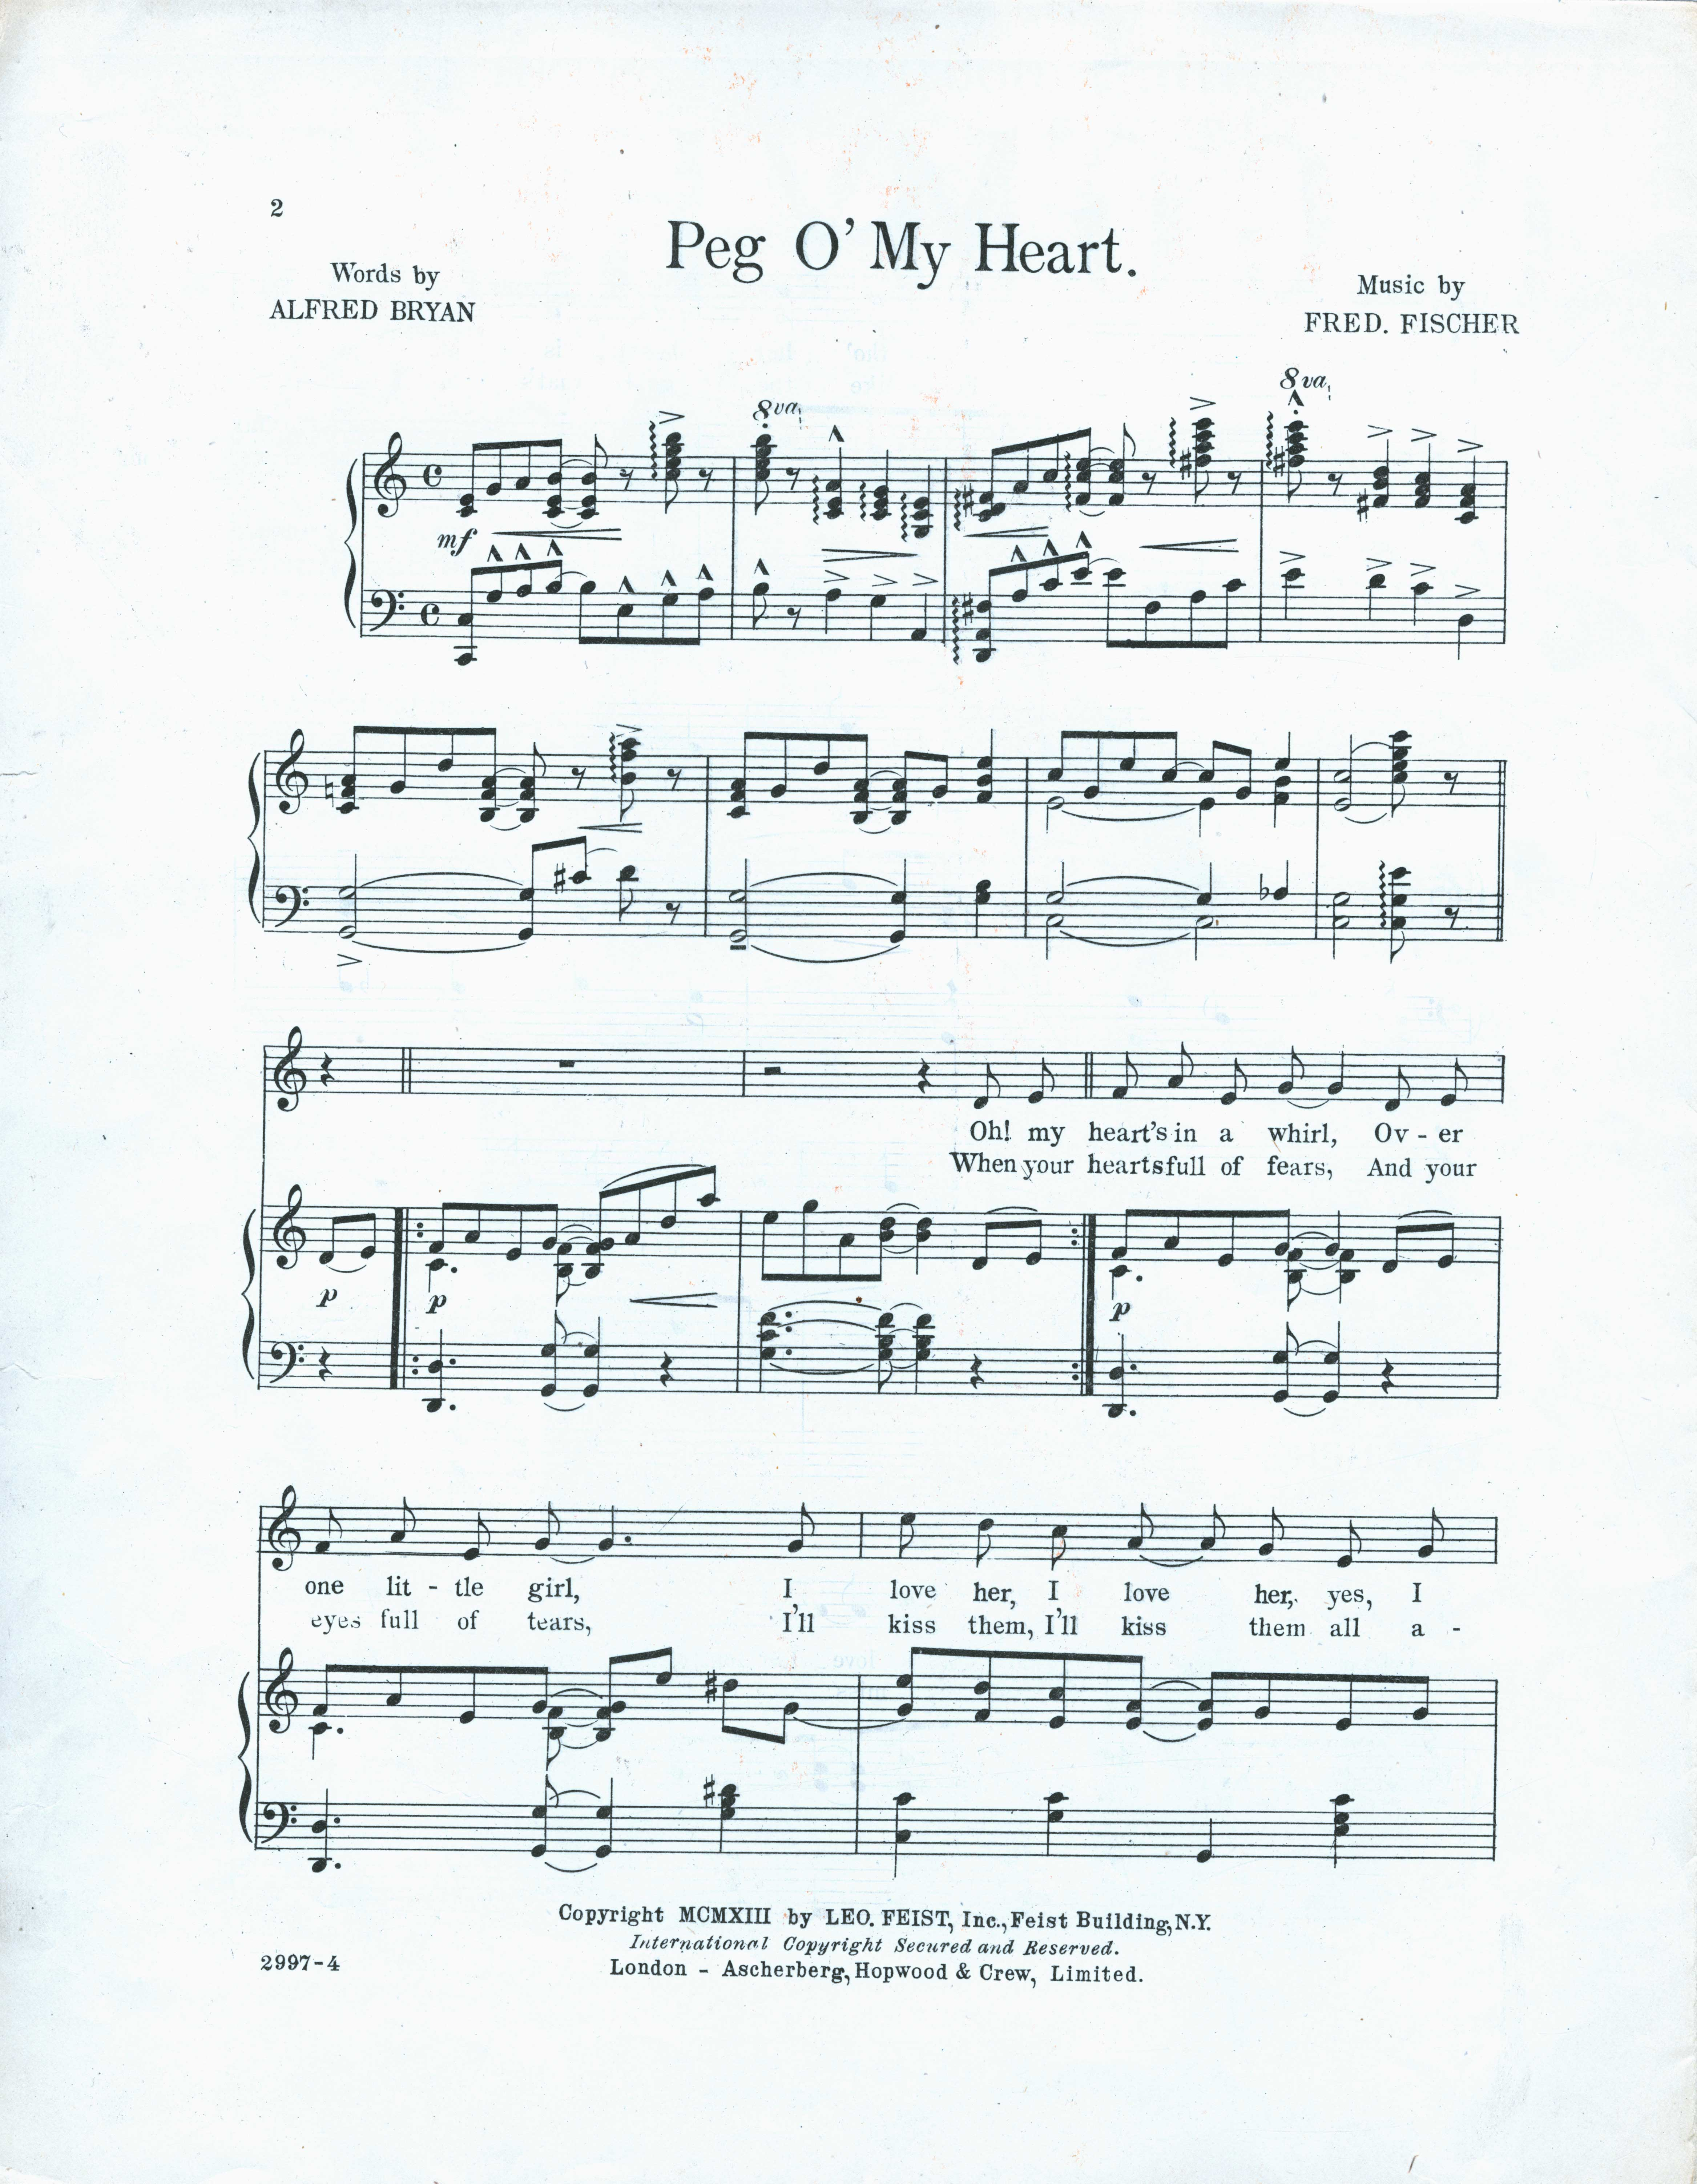 Peg omy heart sheet music sm0071p02xg ccuart Image collections